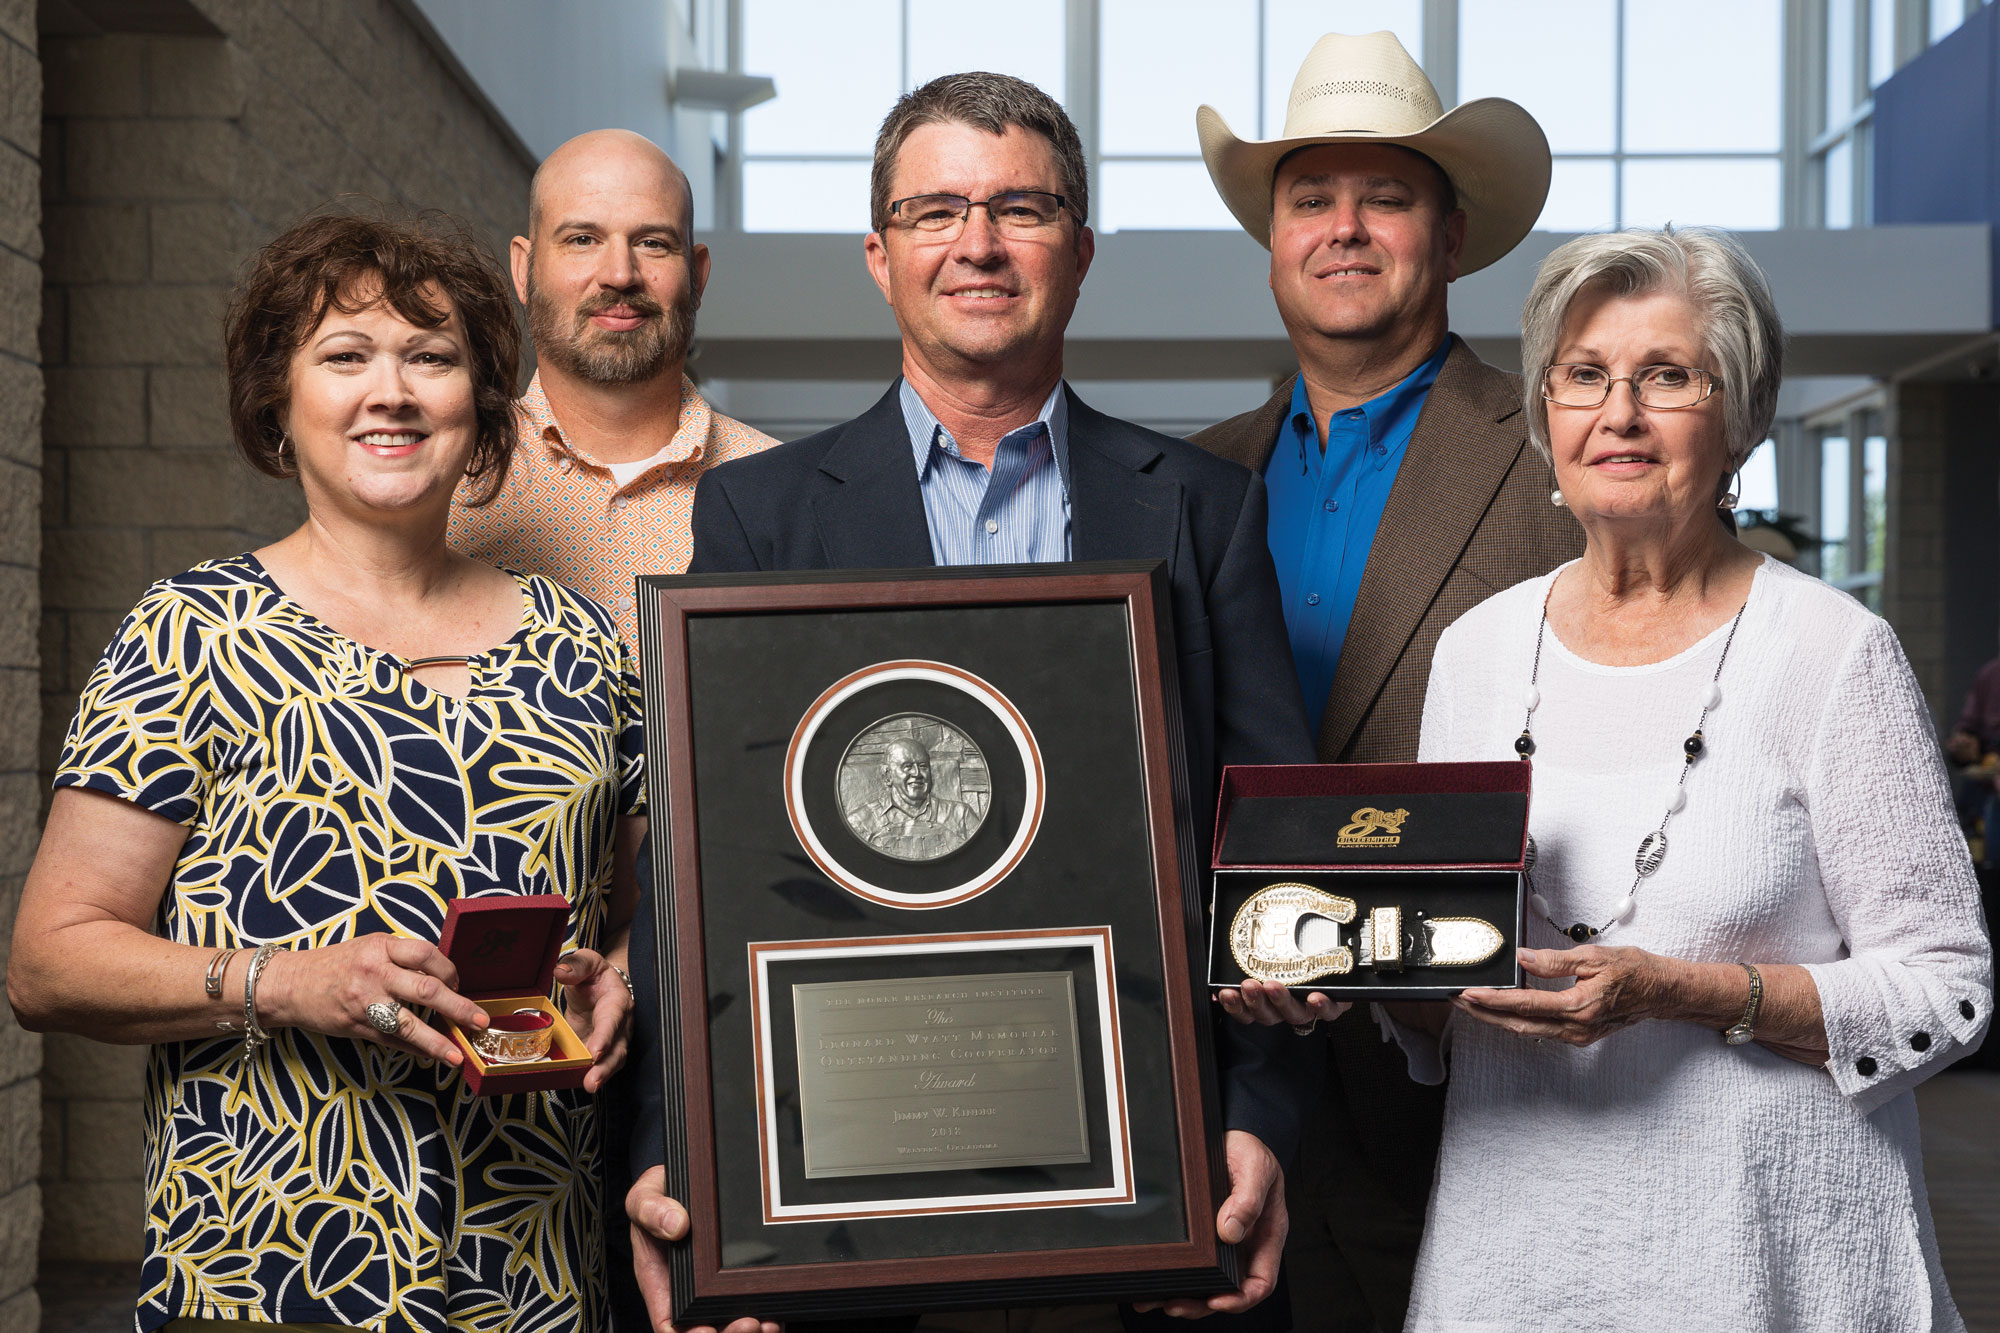 Jimmy Kinder receives the Leonard Wyatt Outstanding Cooperator Award.